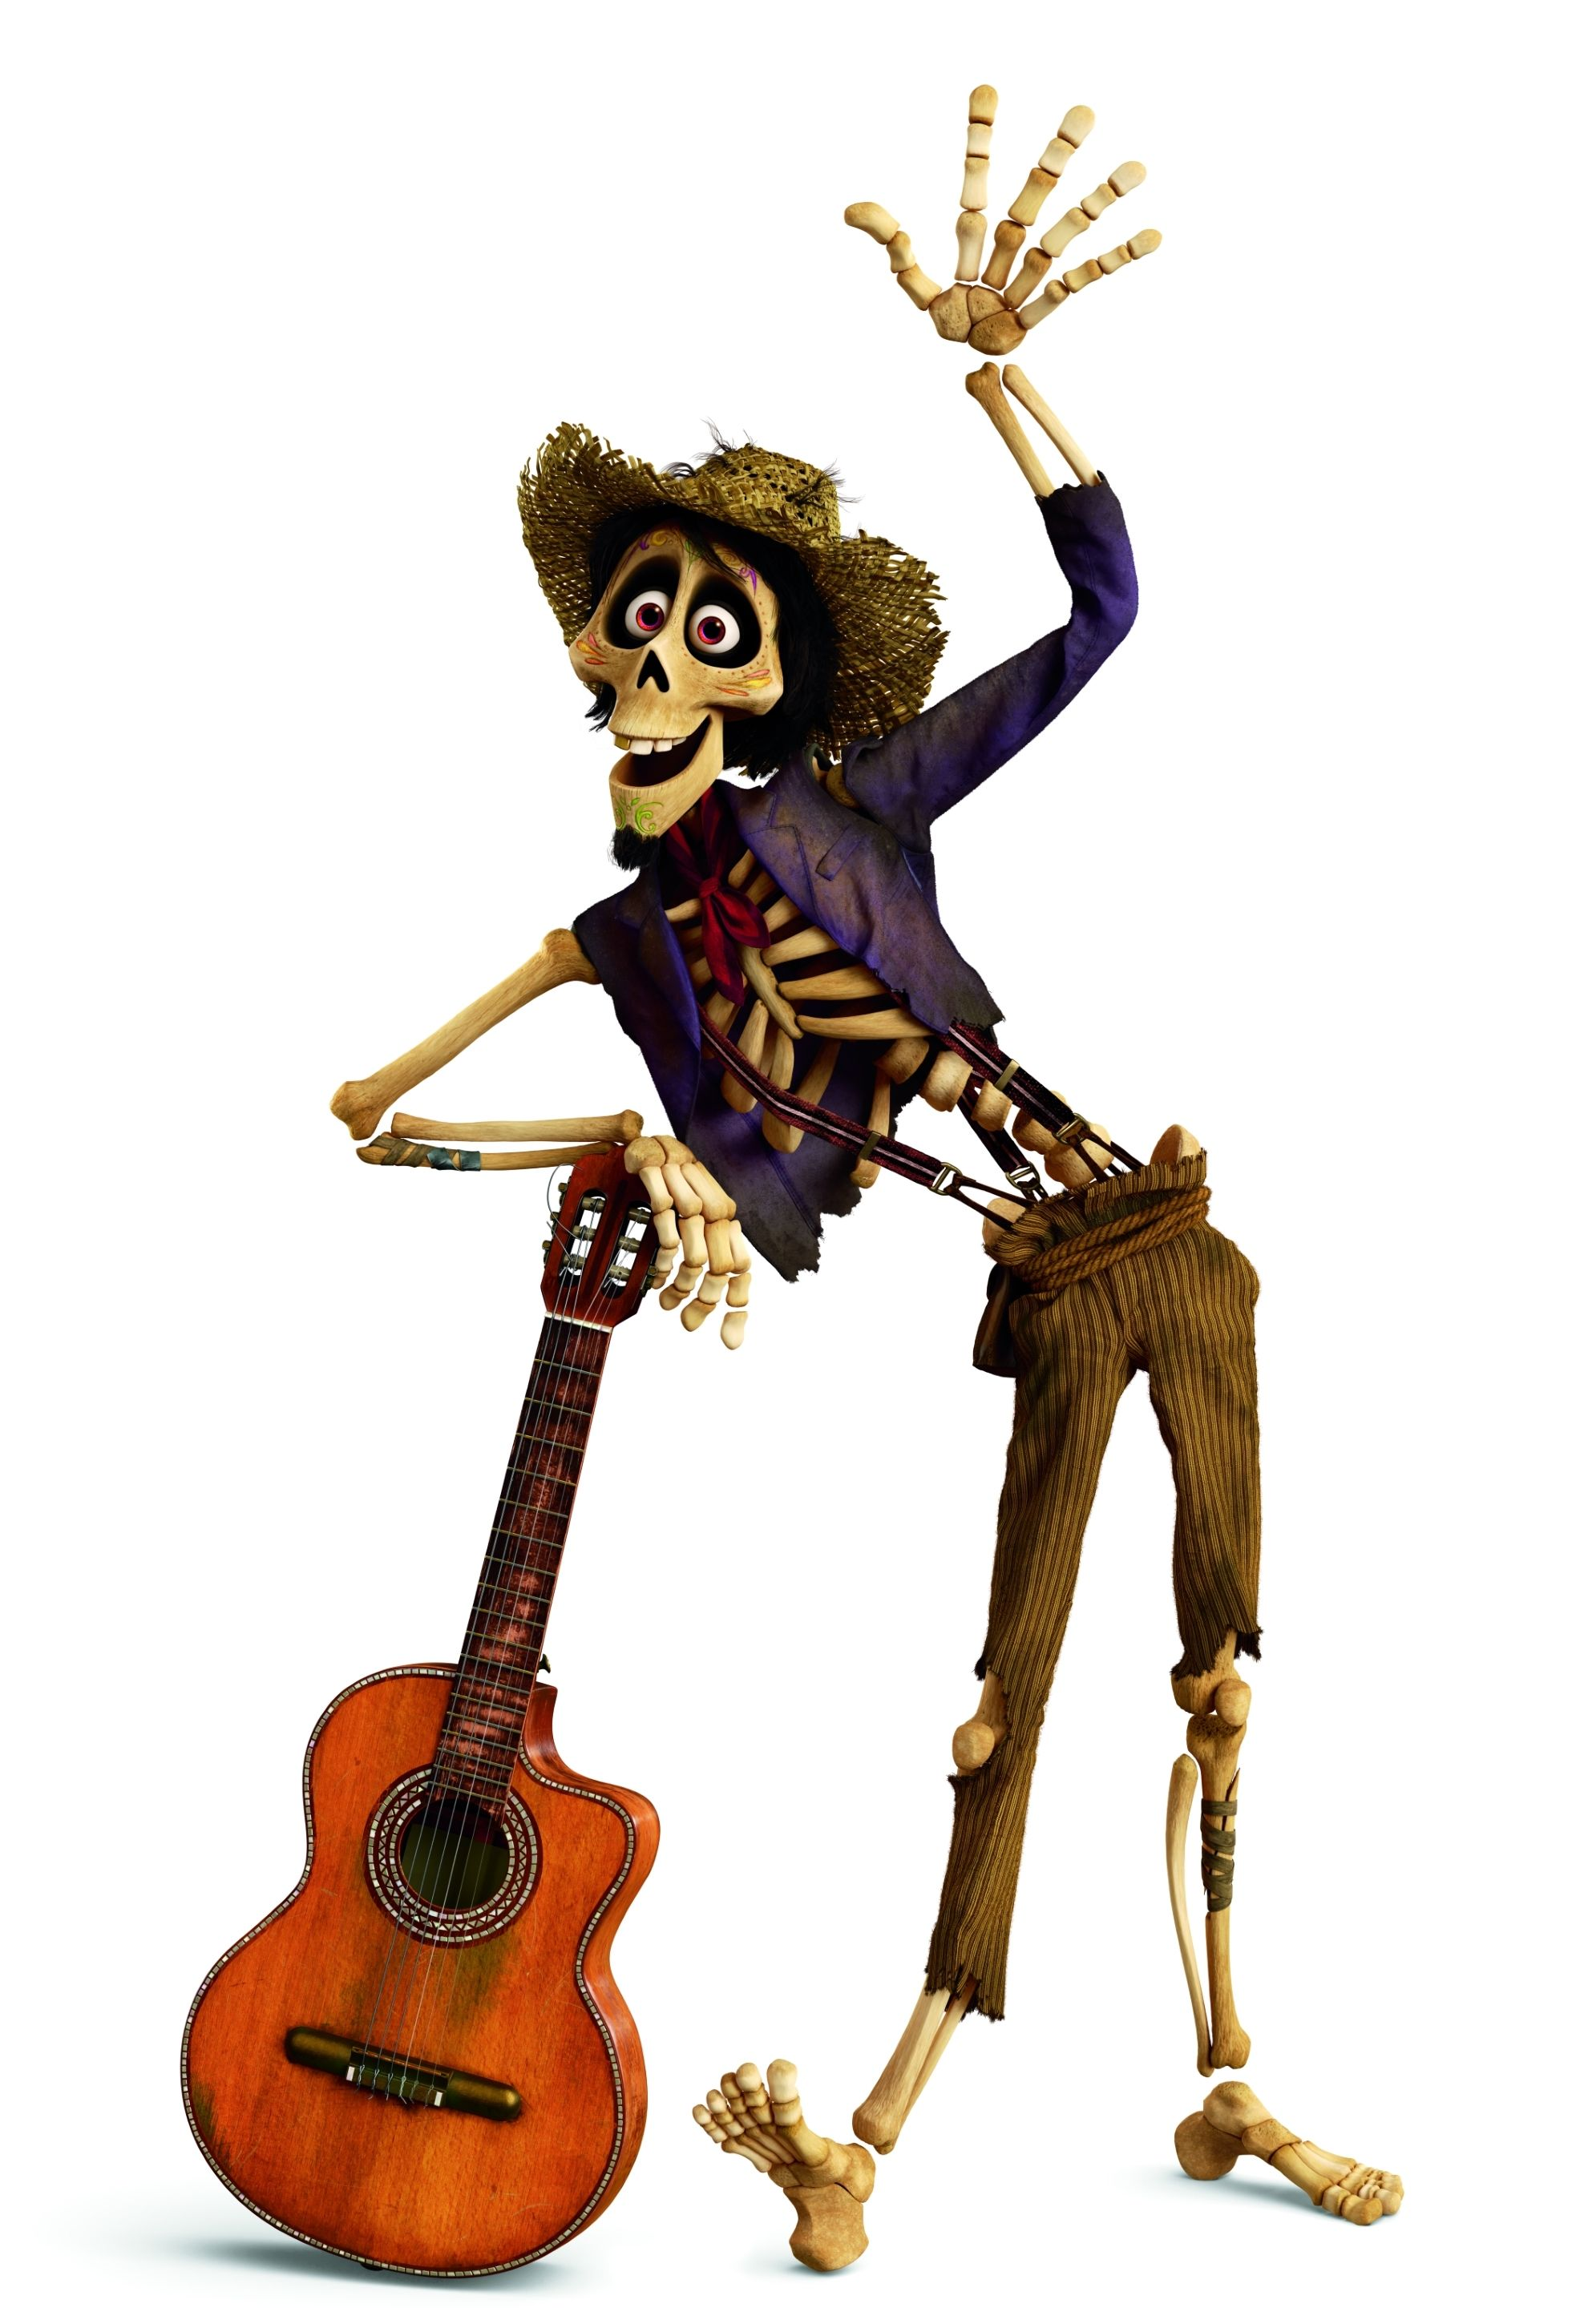 Hector with his guitar from Coco Coco Coco pelicula